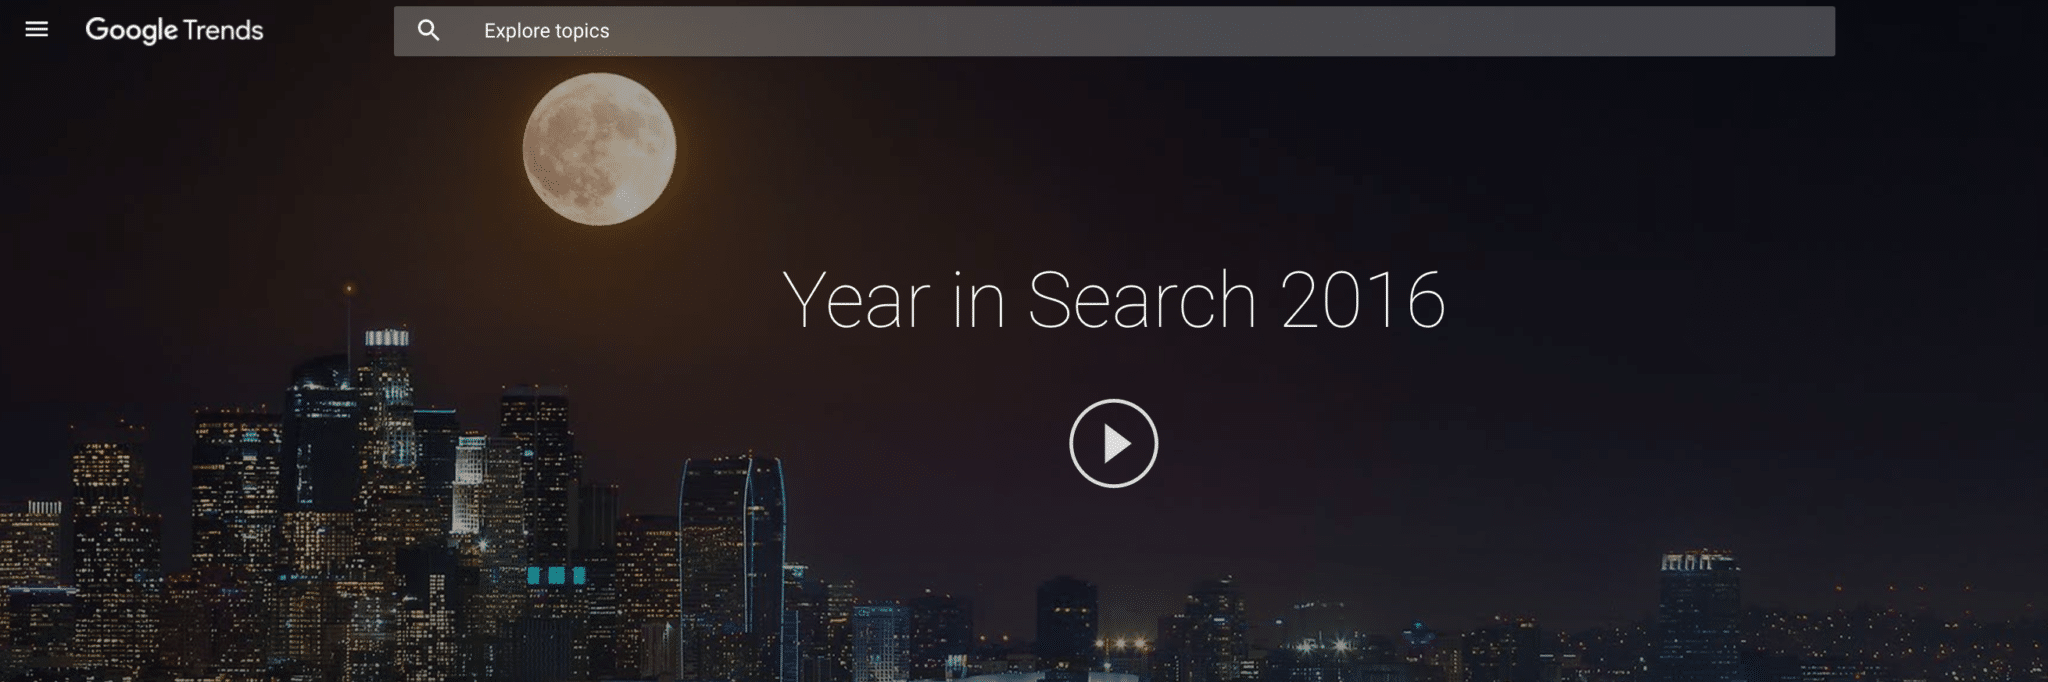 Google: Year In Search 2016